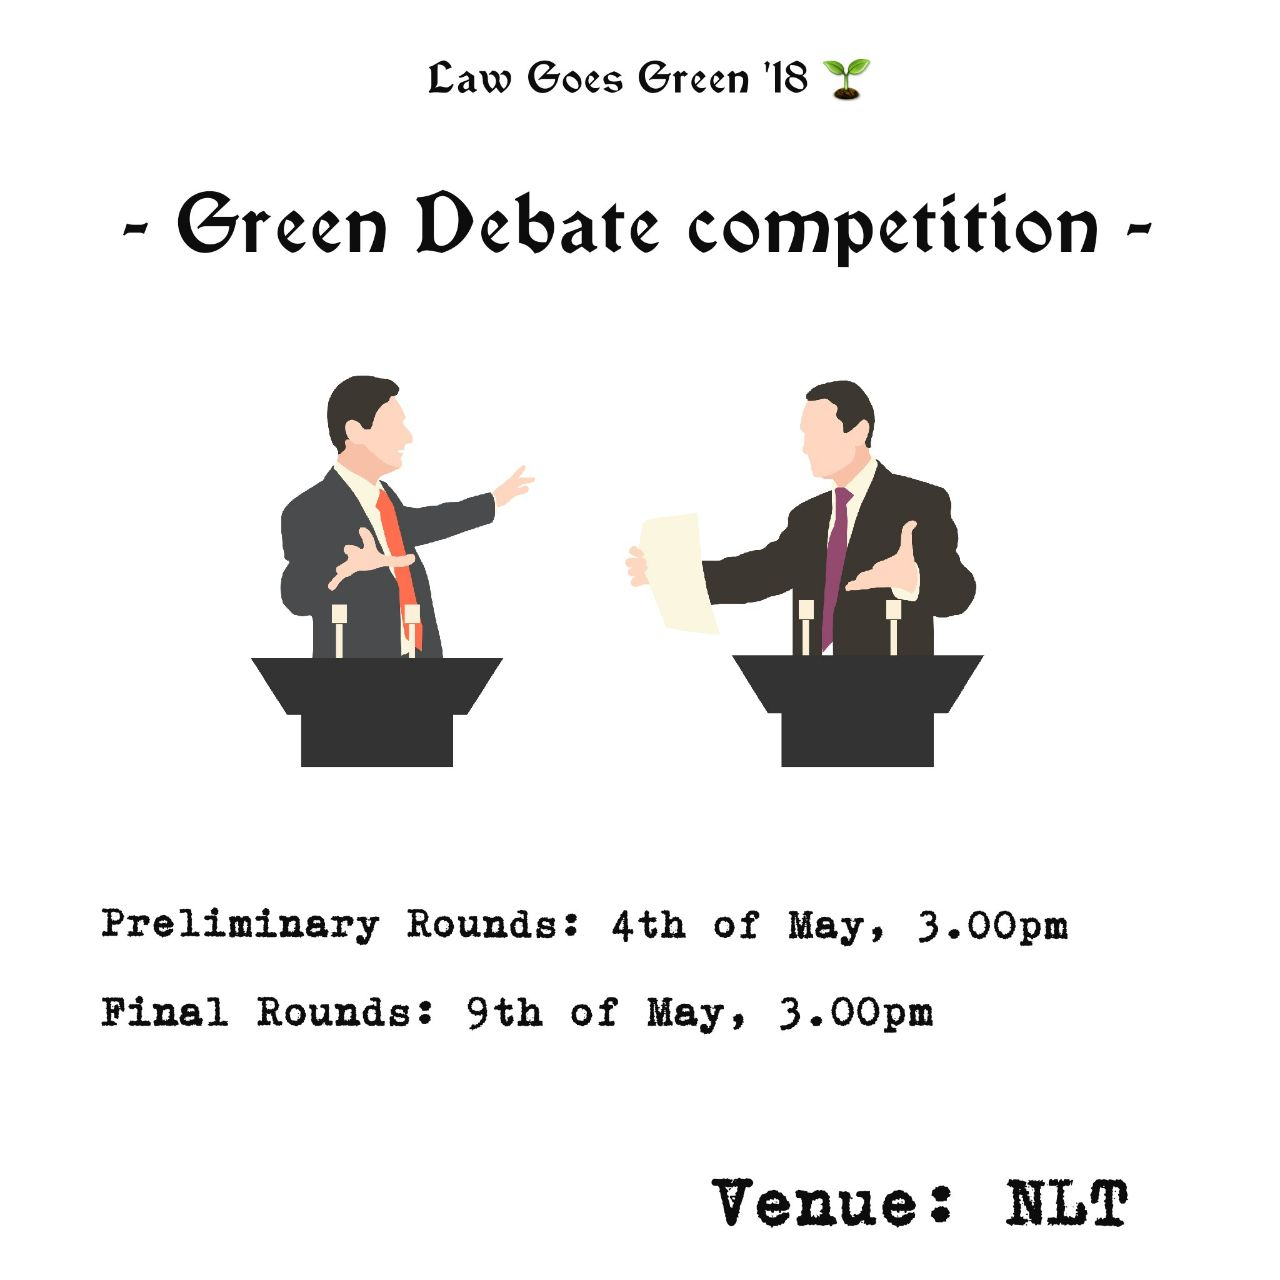 The Green Debate Competition